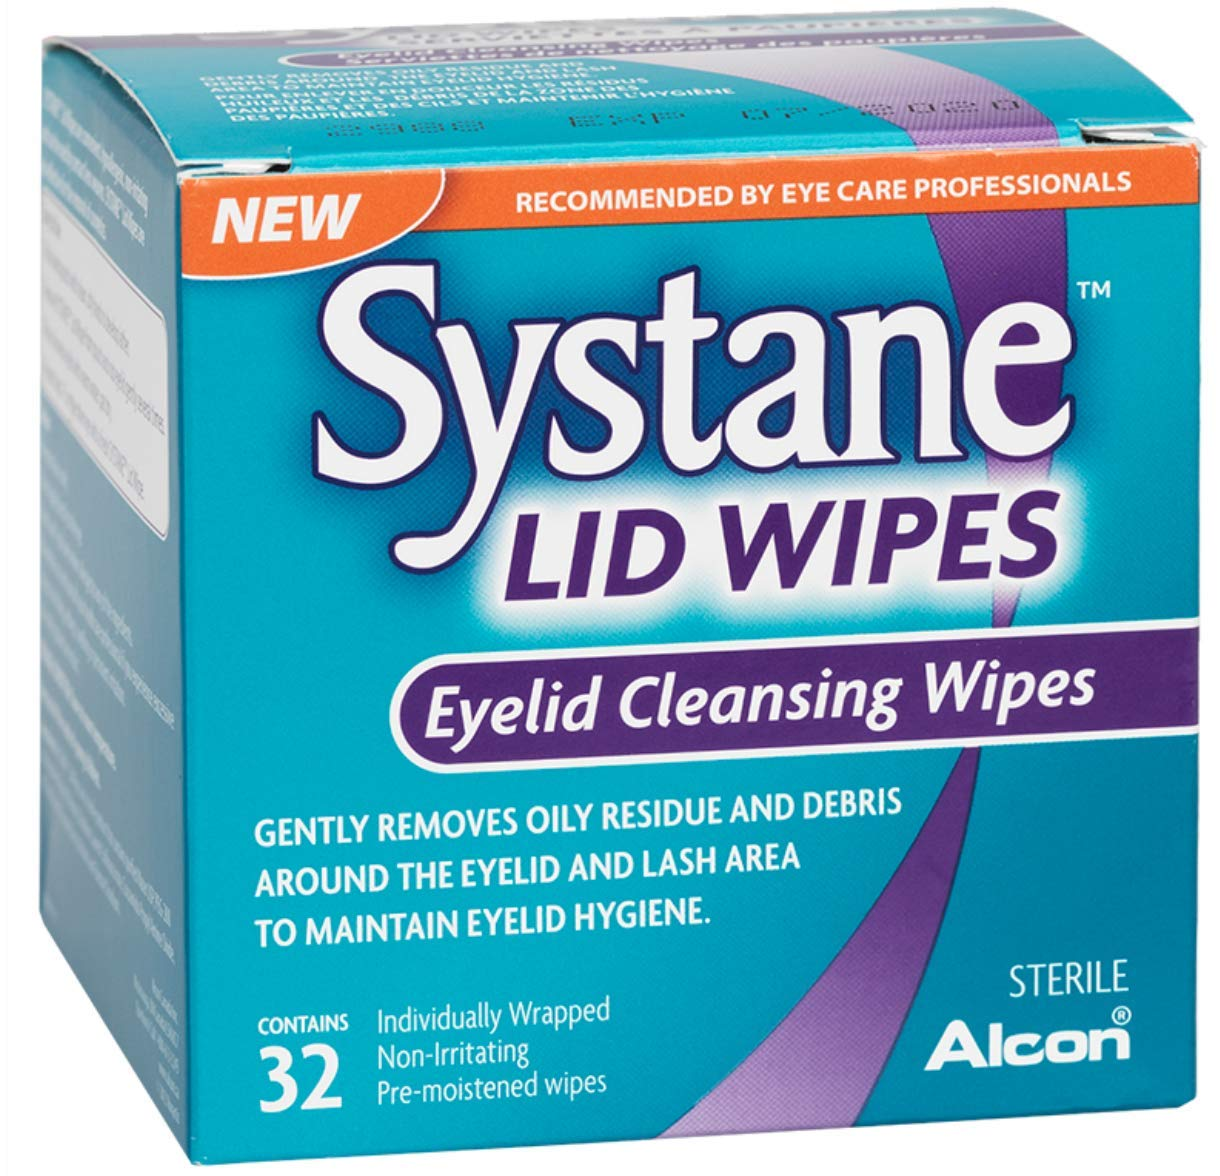 Systane Lid Wipes - Eyelid Cleansing Wipes - Sterile, Count of 32 by Systane